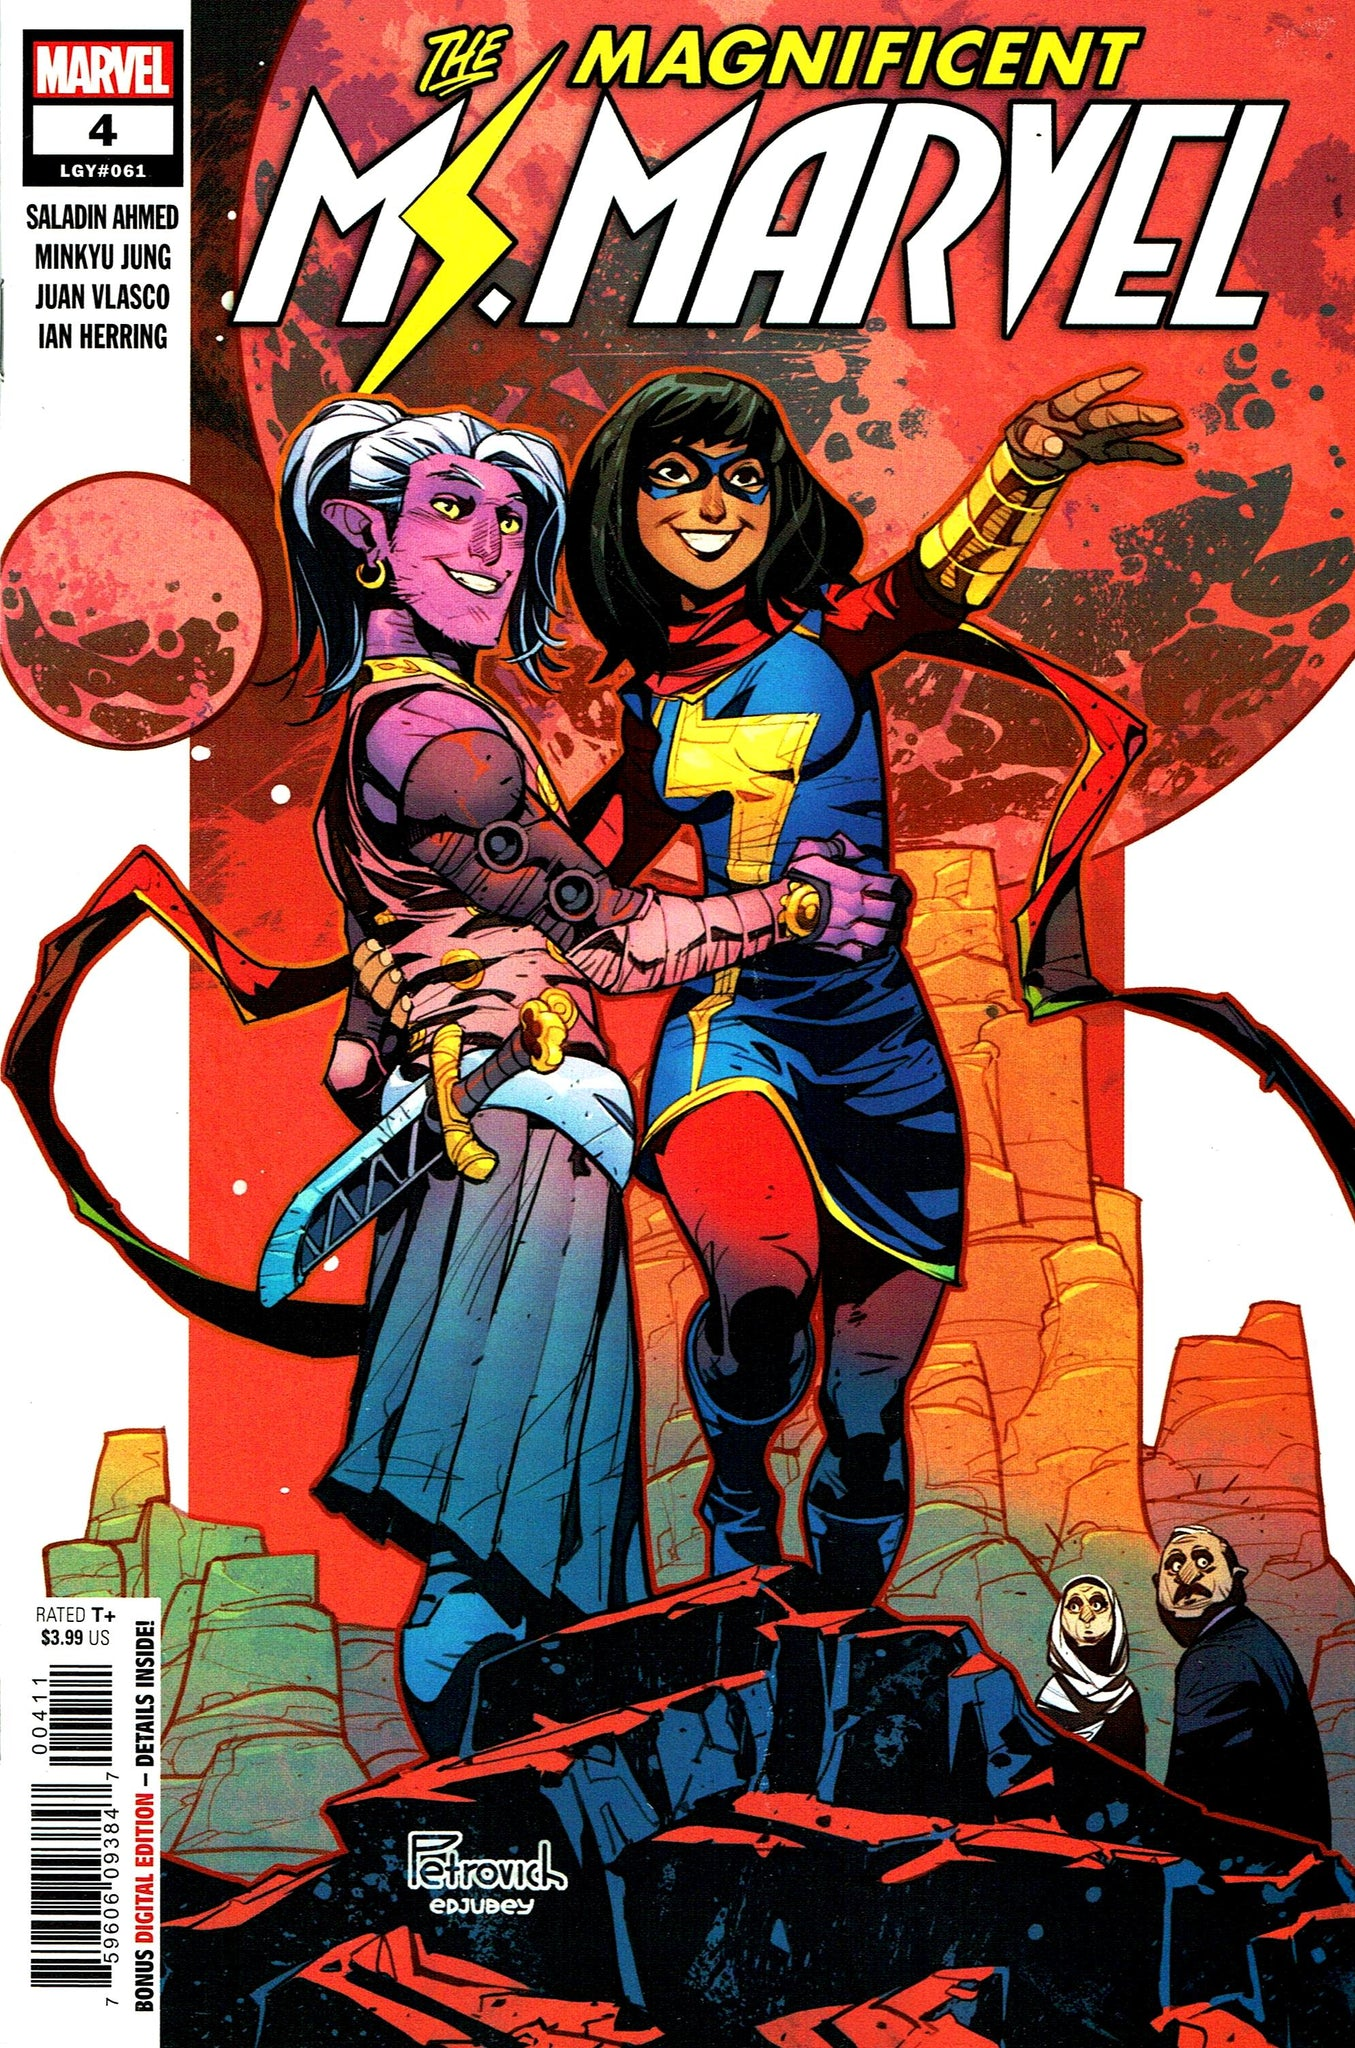 Magnificent Ms Marvel (2019) #04